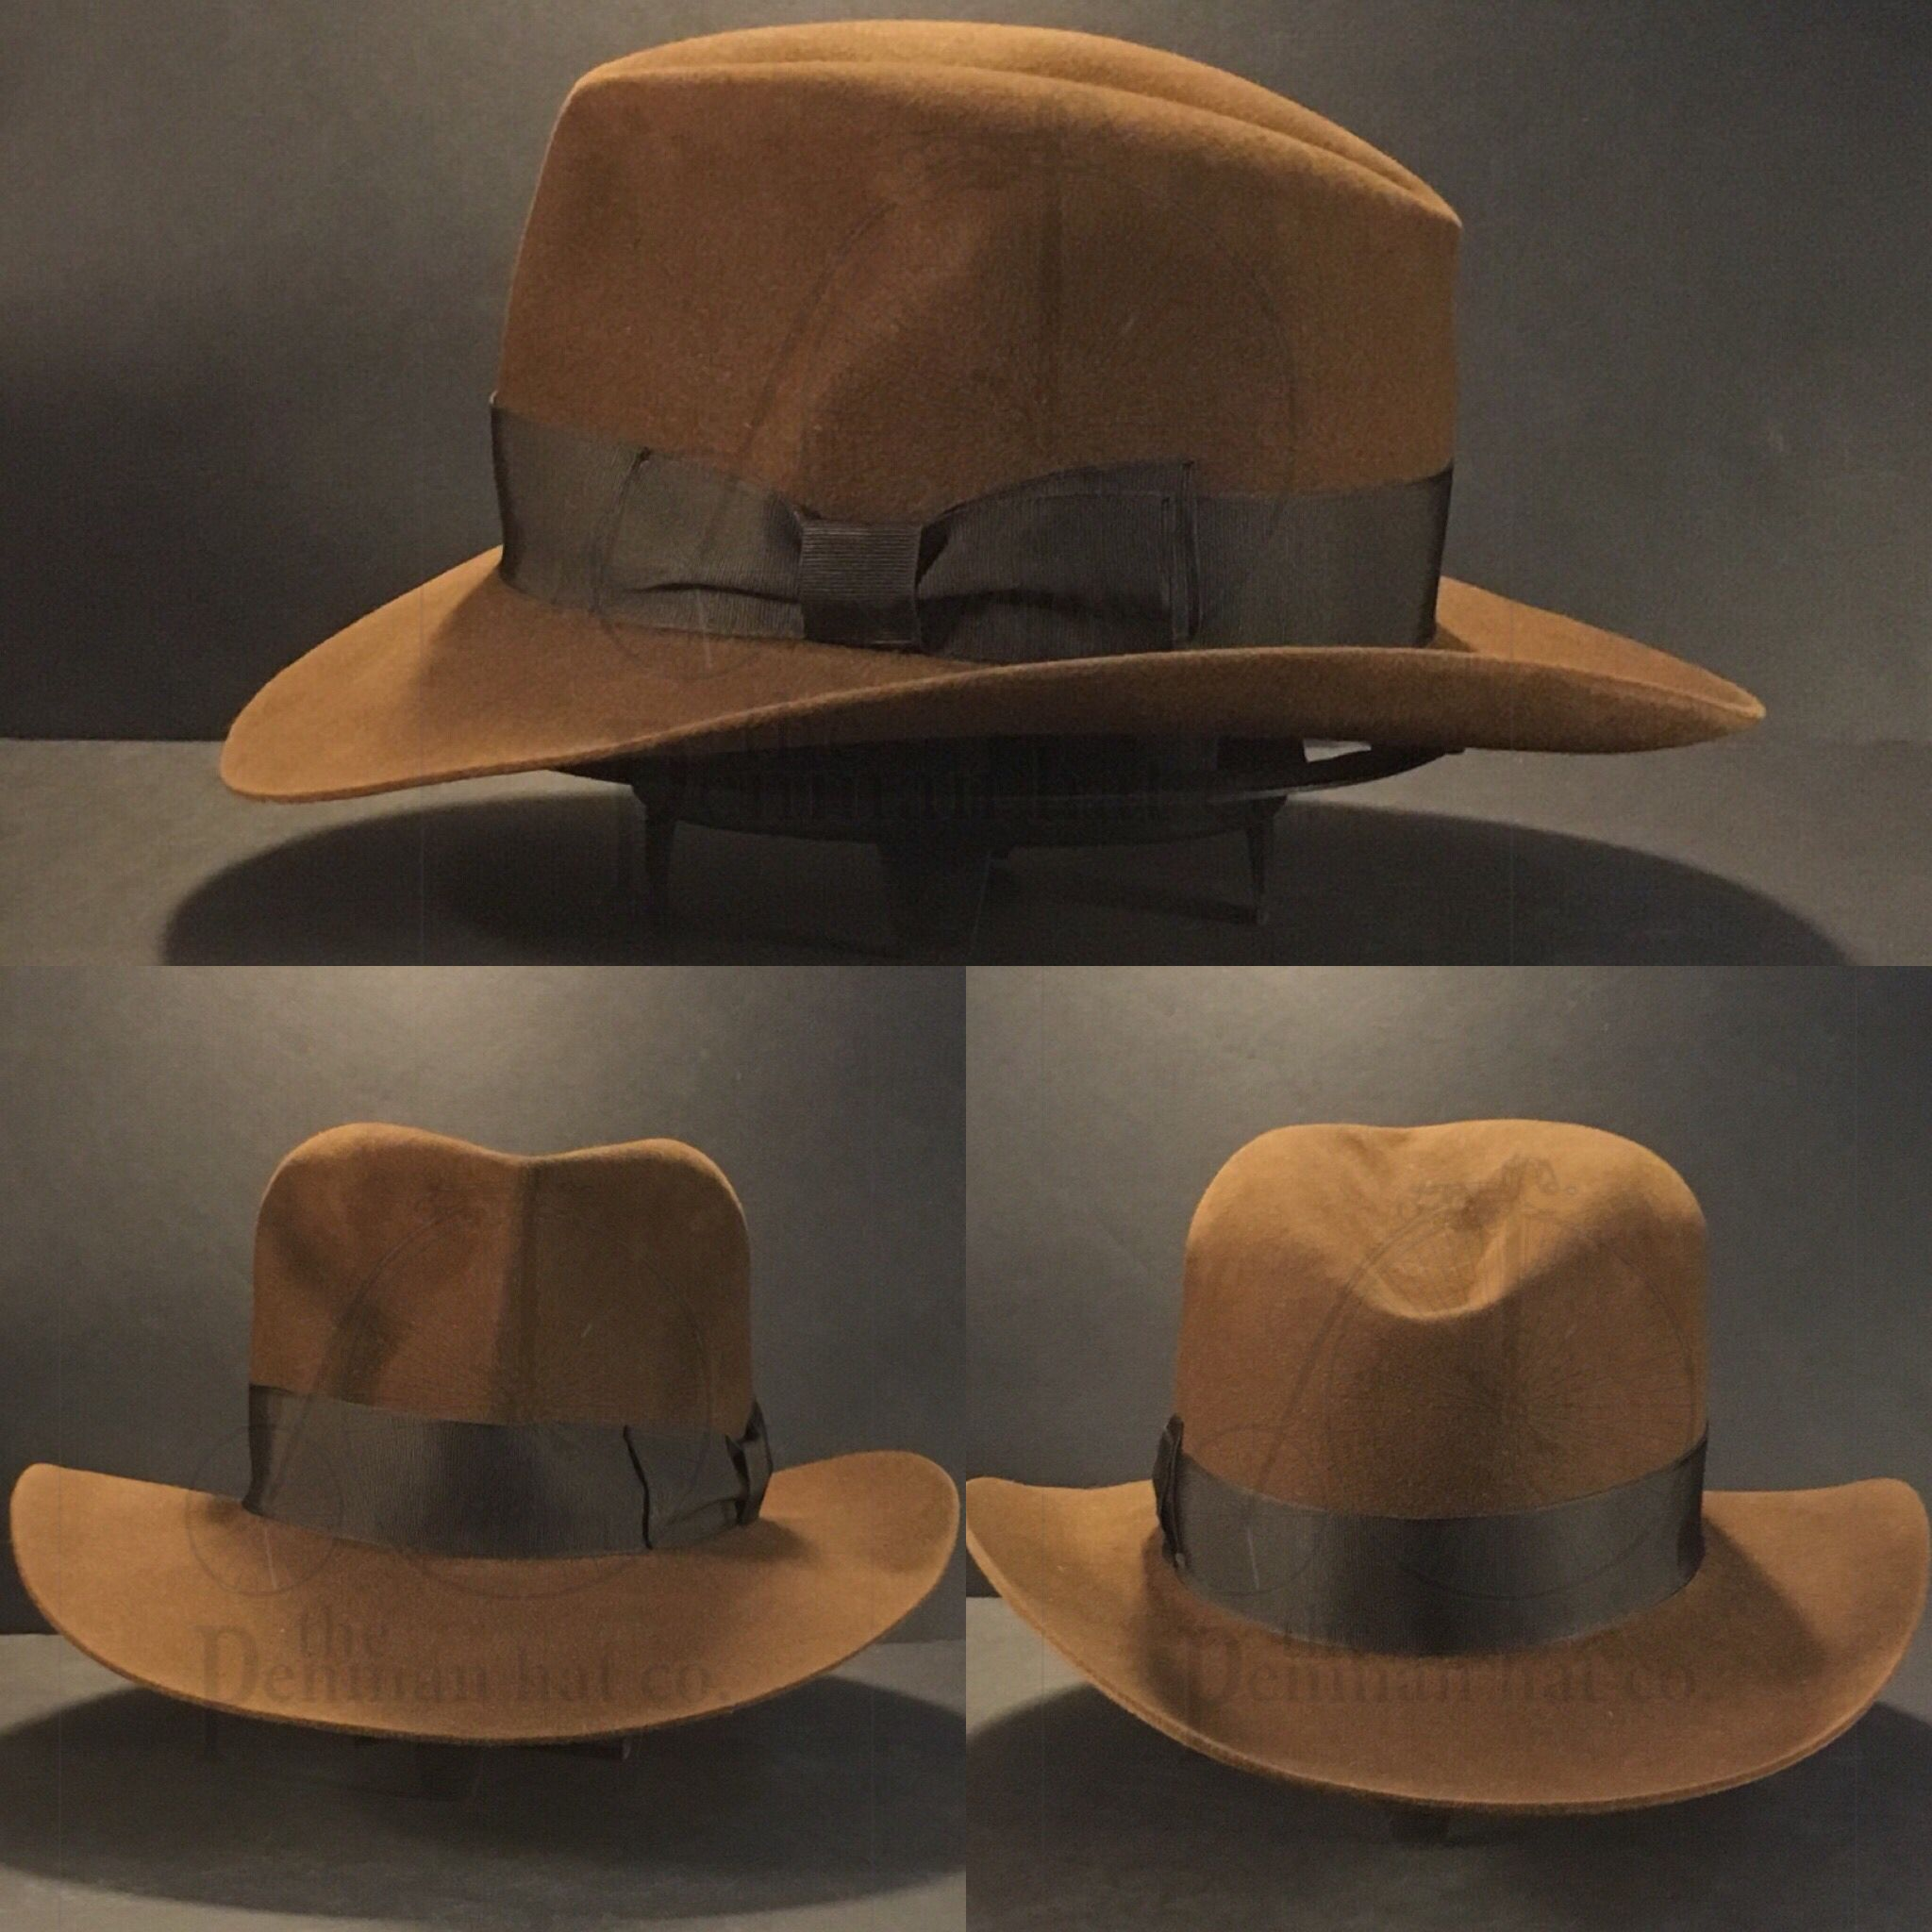 374c1693148cf4 Just finished a Indiana Jones Raiders of the Lost Ark fedora. All indy hats  are cut using a special tool based off a hand cut HJ (Richard Swales) hat.